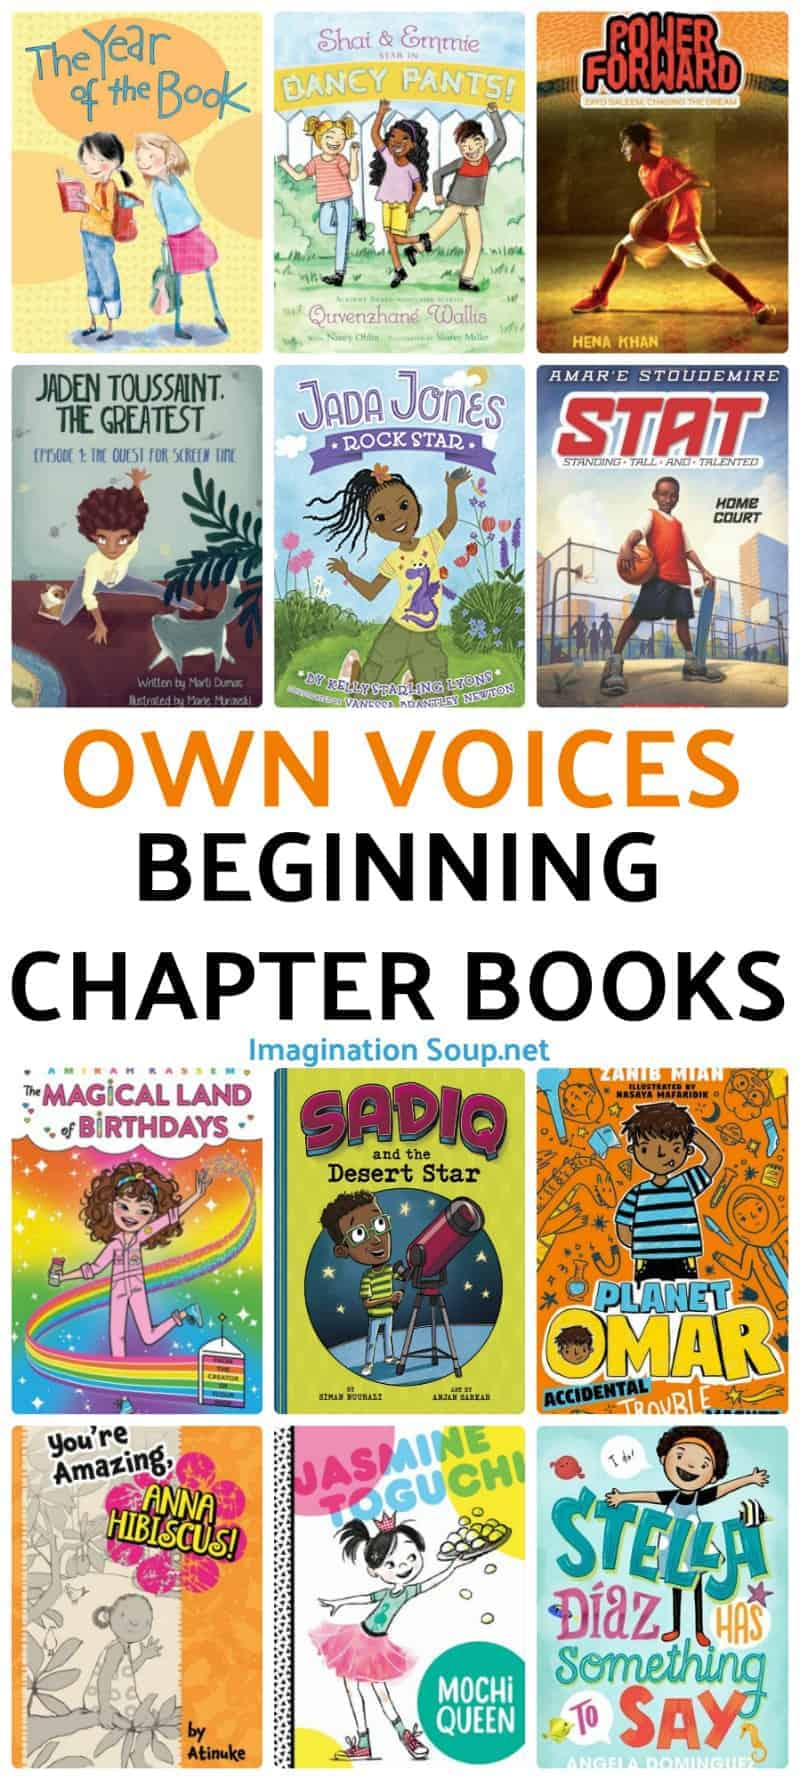 OwnVoices Beginning Chapter Books for Kids Ages 6 - 8